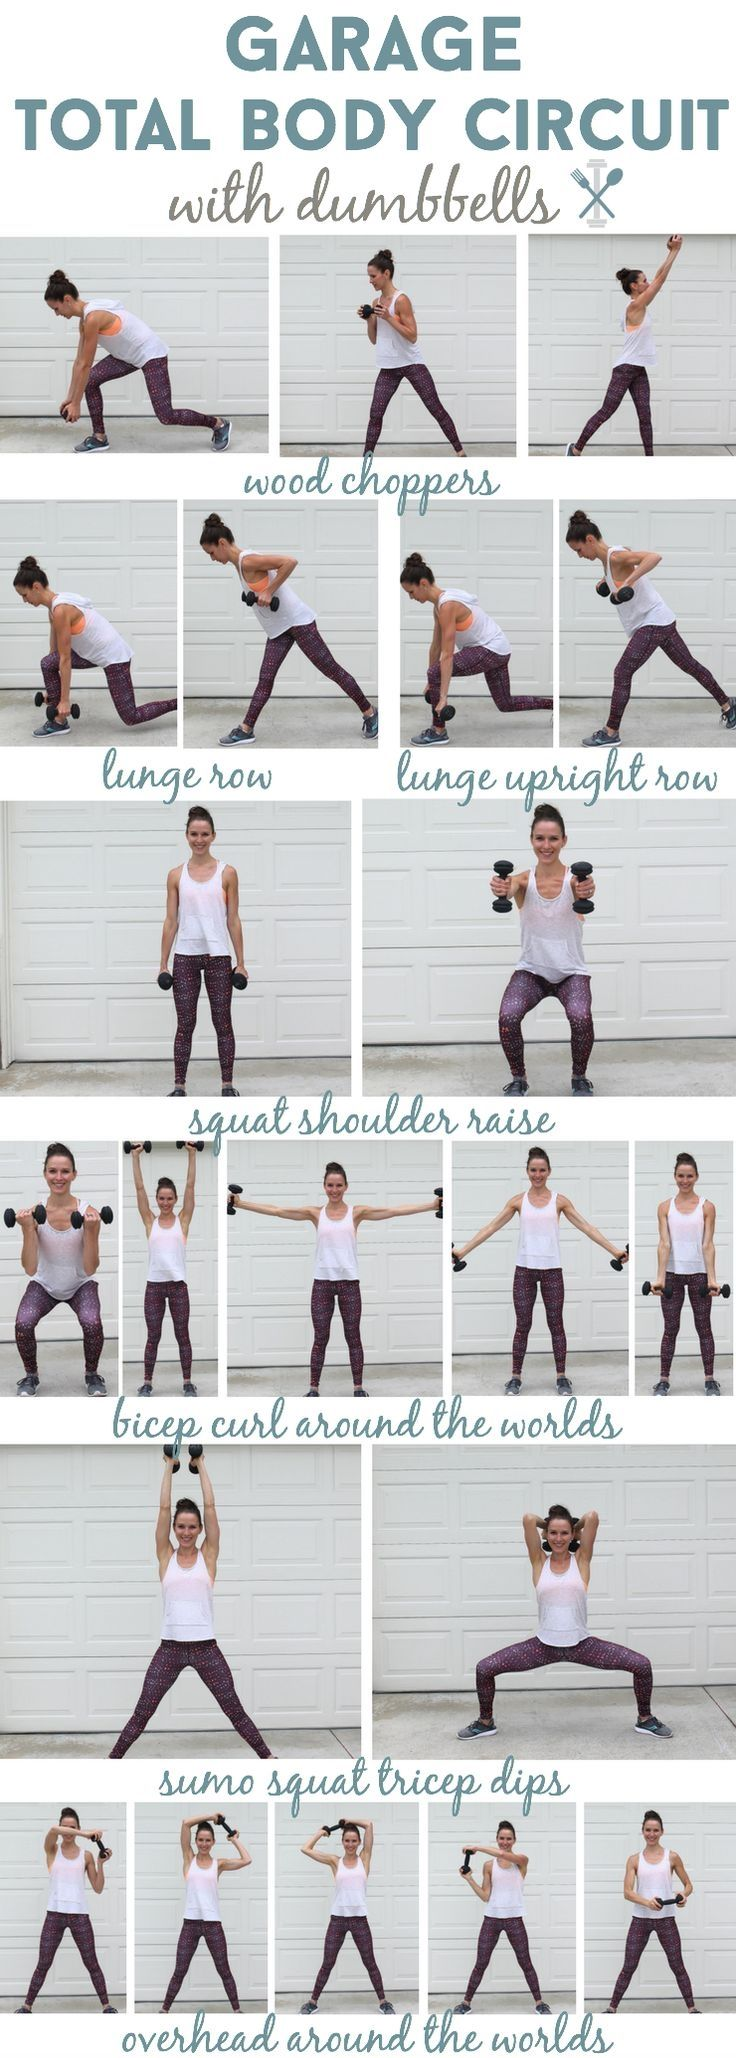 Best ideas about healthy bodies on pinterest yoga